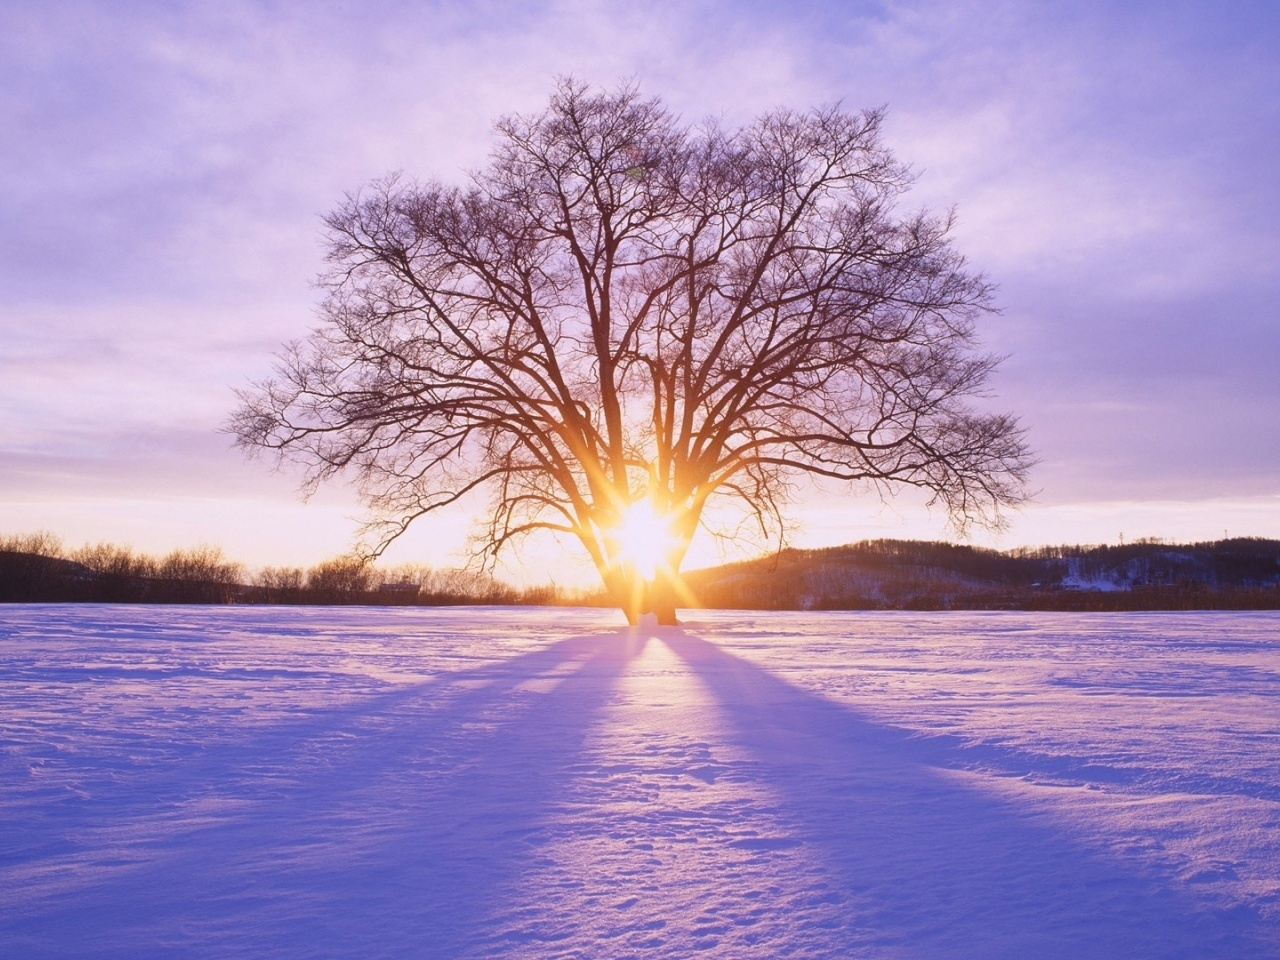 1280x720 Shiny Sun Tree & Snow Scenery